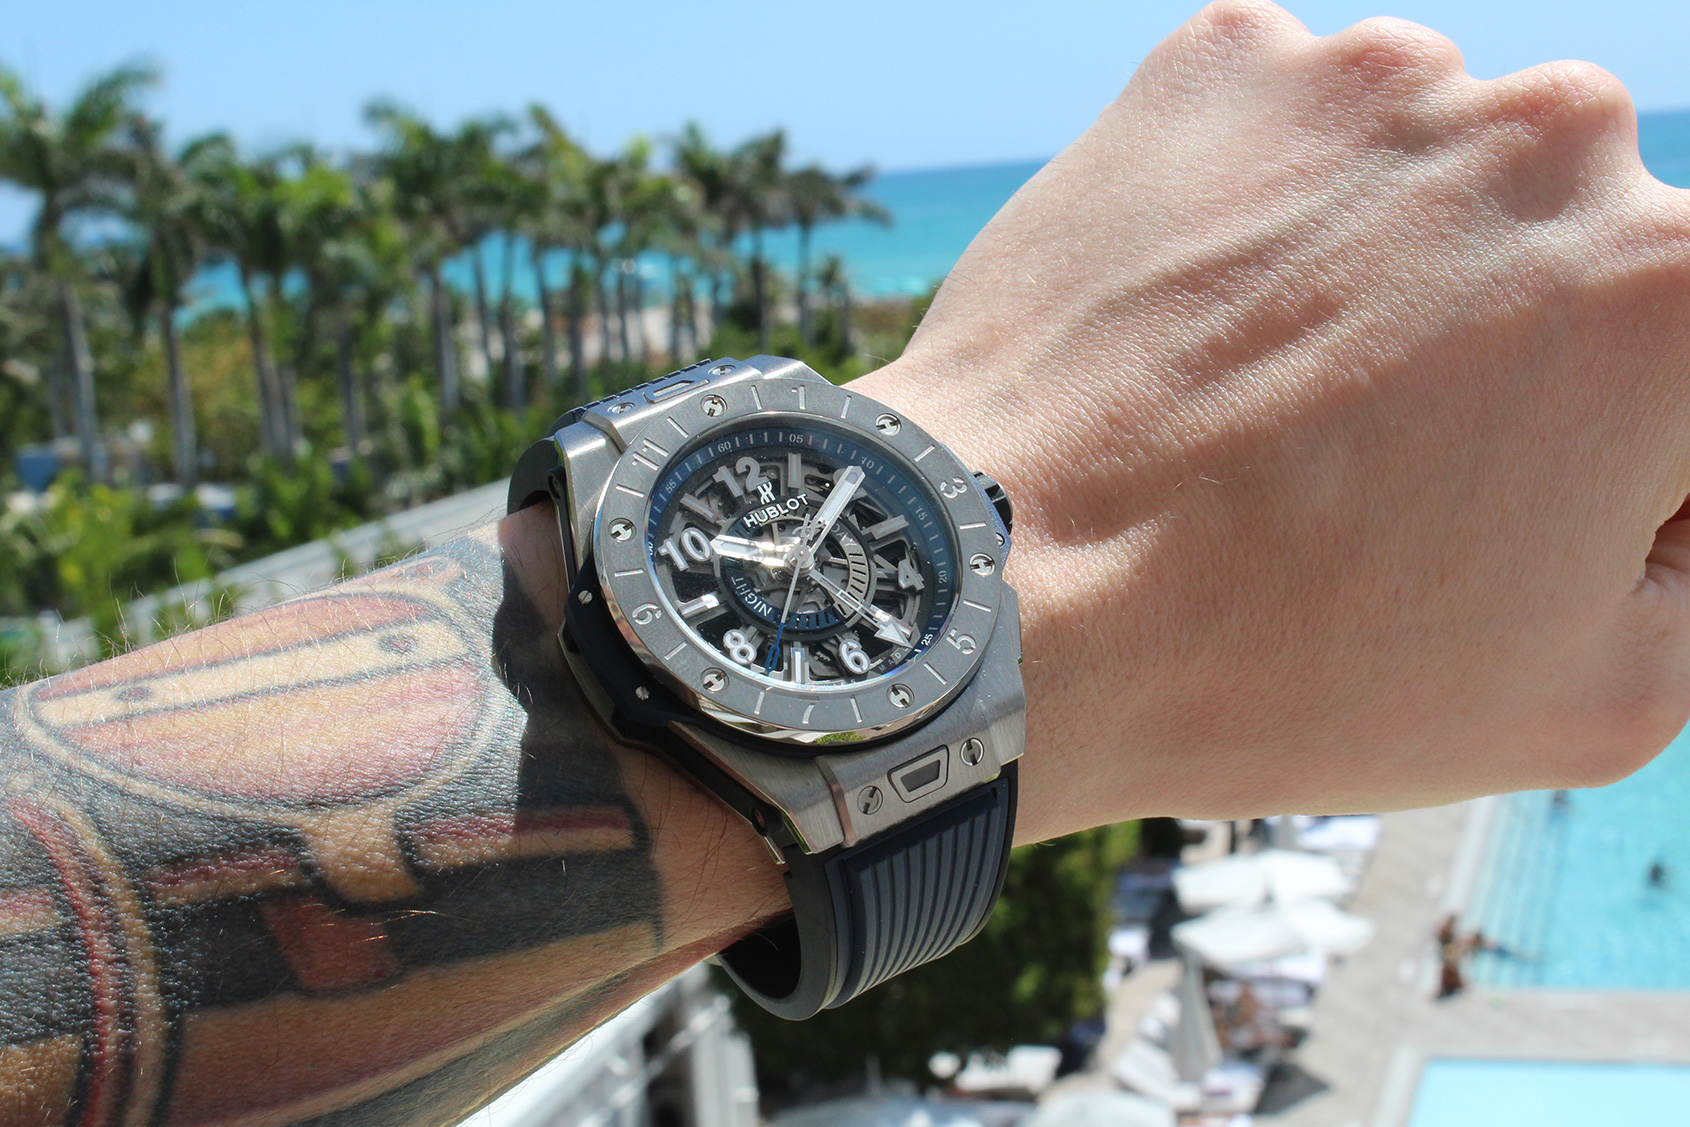 In Depth The Hublot Big Bang Unico Gmt Titanium Time And Tide Watches